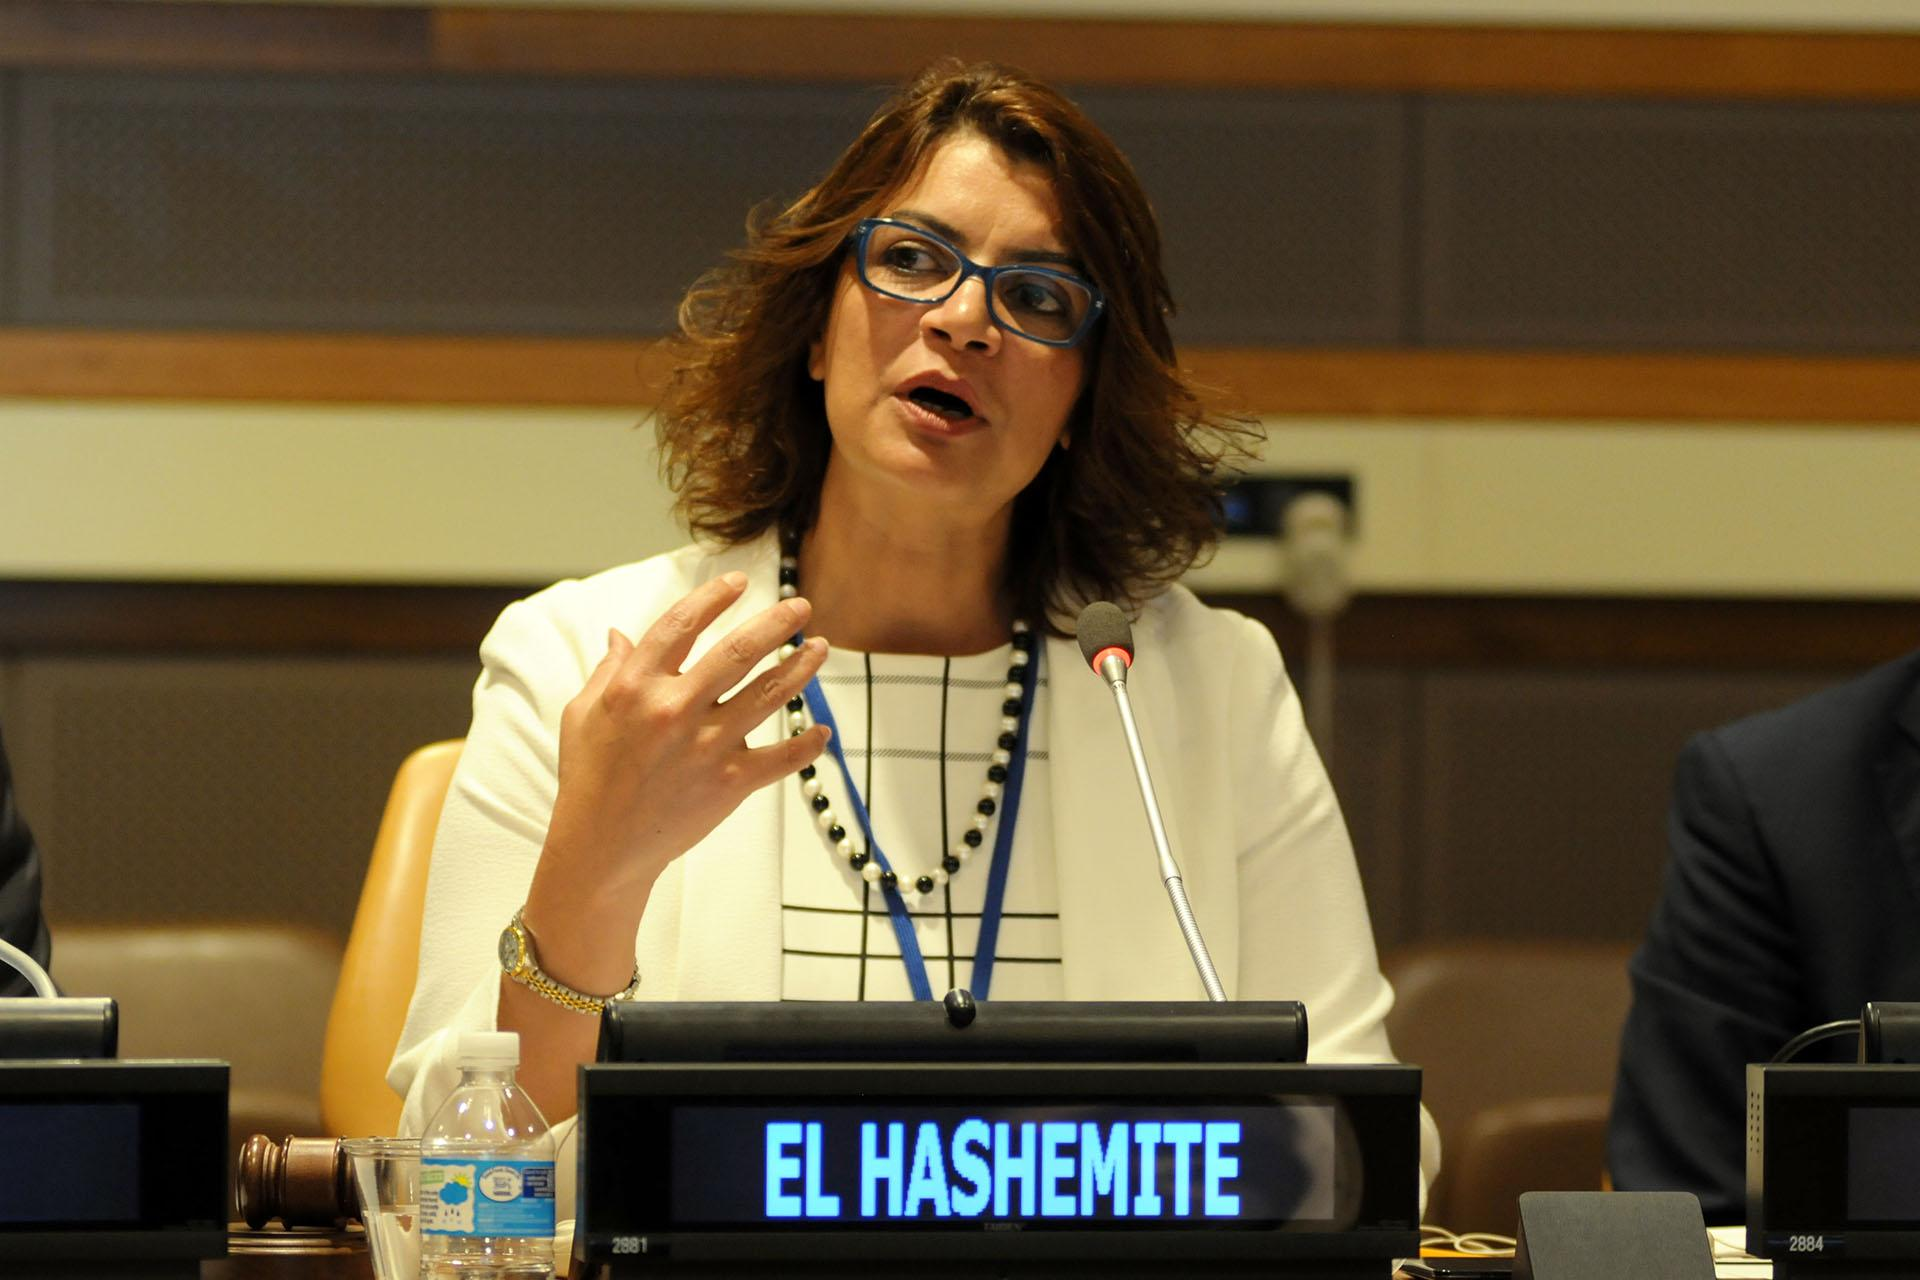 Nisreen El-Hashemite speaks at Aci Schools in Istanbul. El-Hashemite is a medical doctor, geneticist and Iraqi princess fighting for gender equality in science.